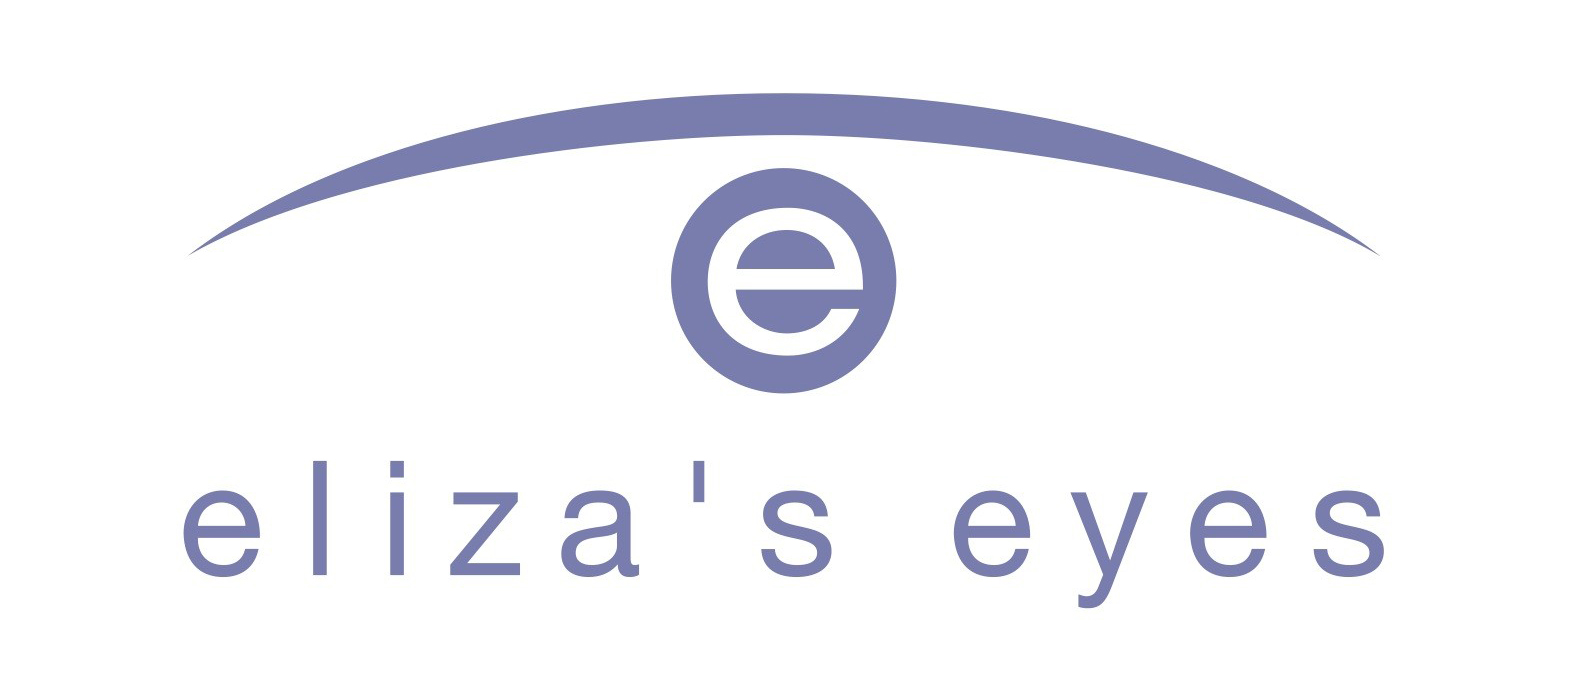 elizas eyes logo